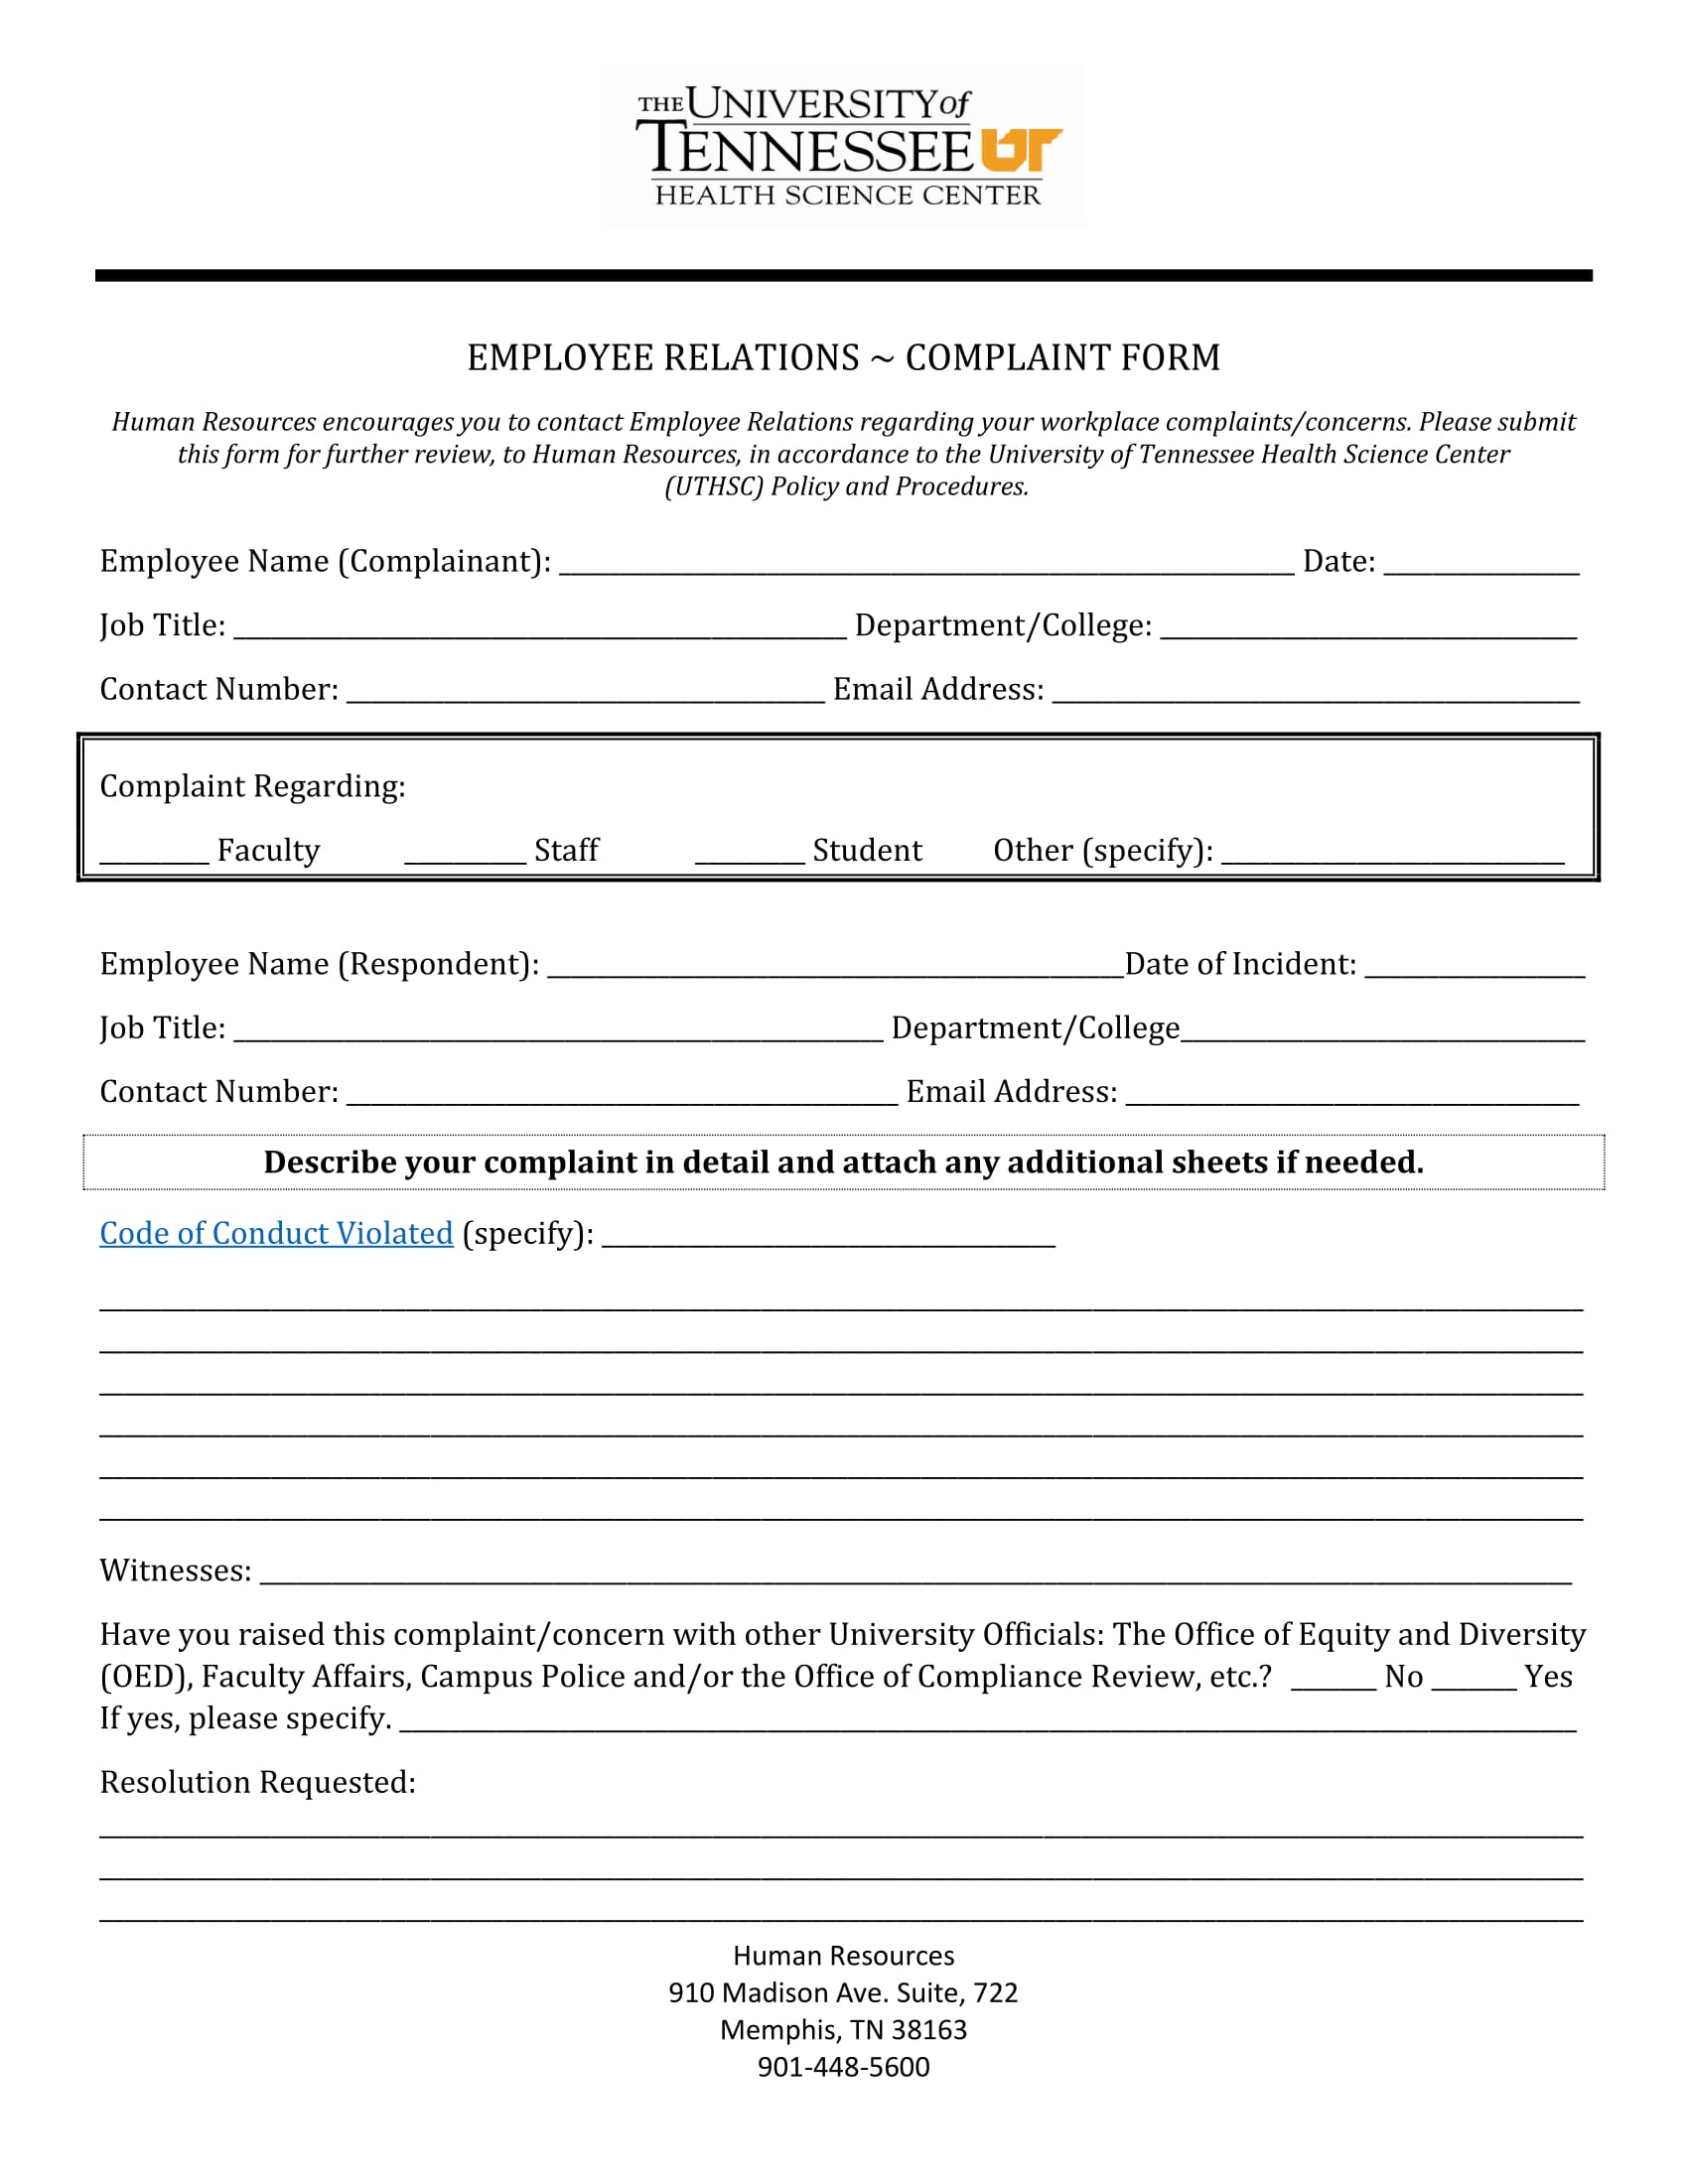 employee relations complaint form 1